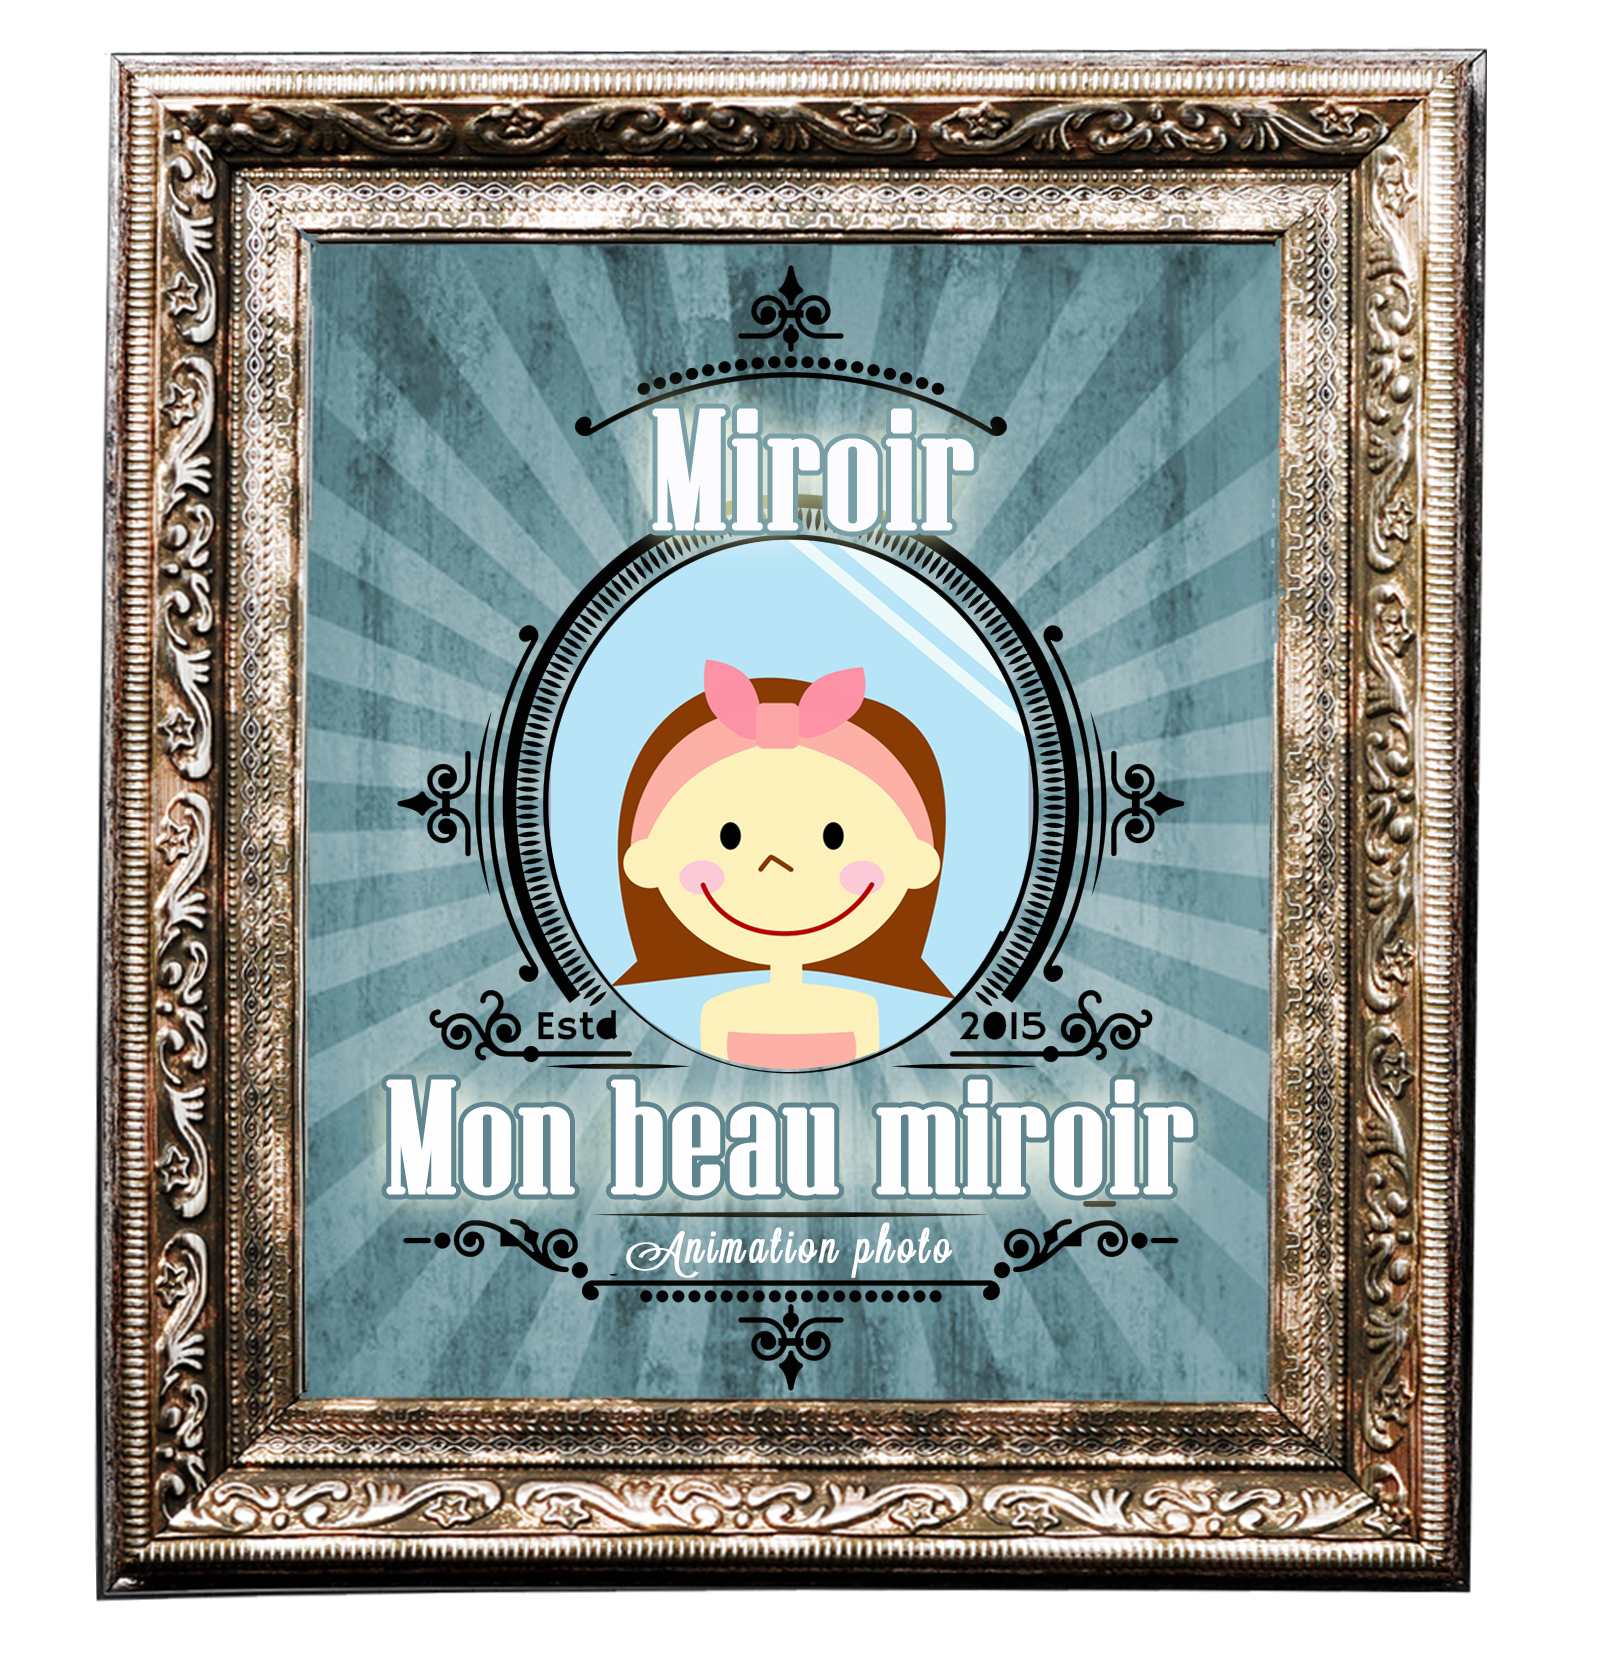 animation photo logo miroir V2 copie